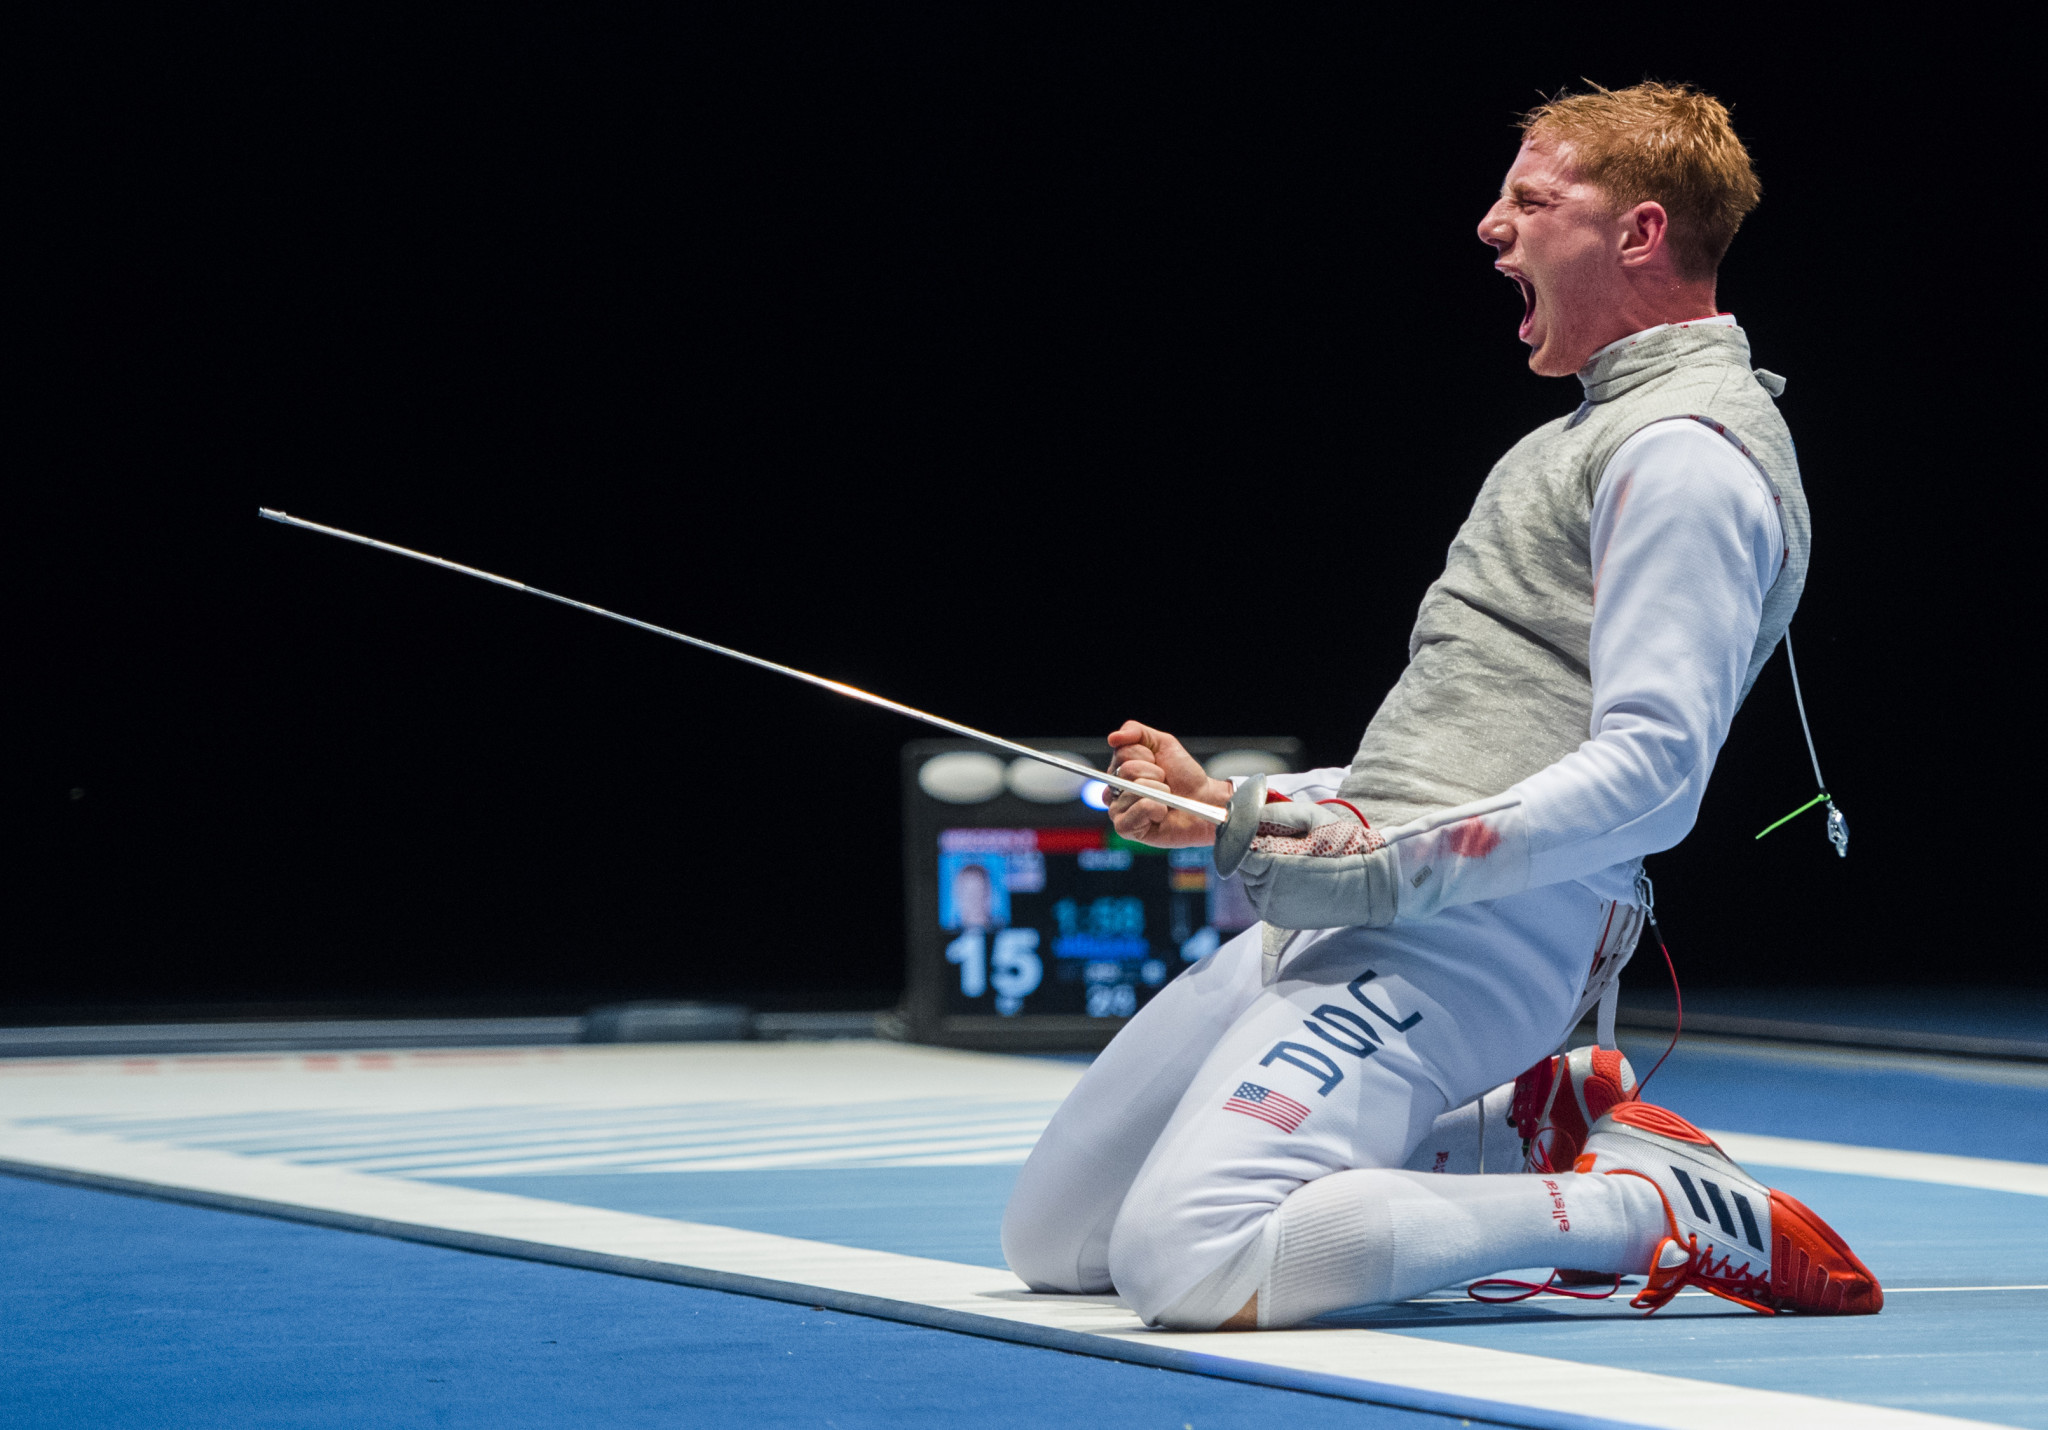 Race Imboden will be seeking a repeat win over his US team-mate ©Getty Images